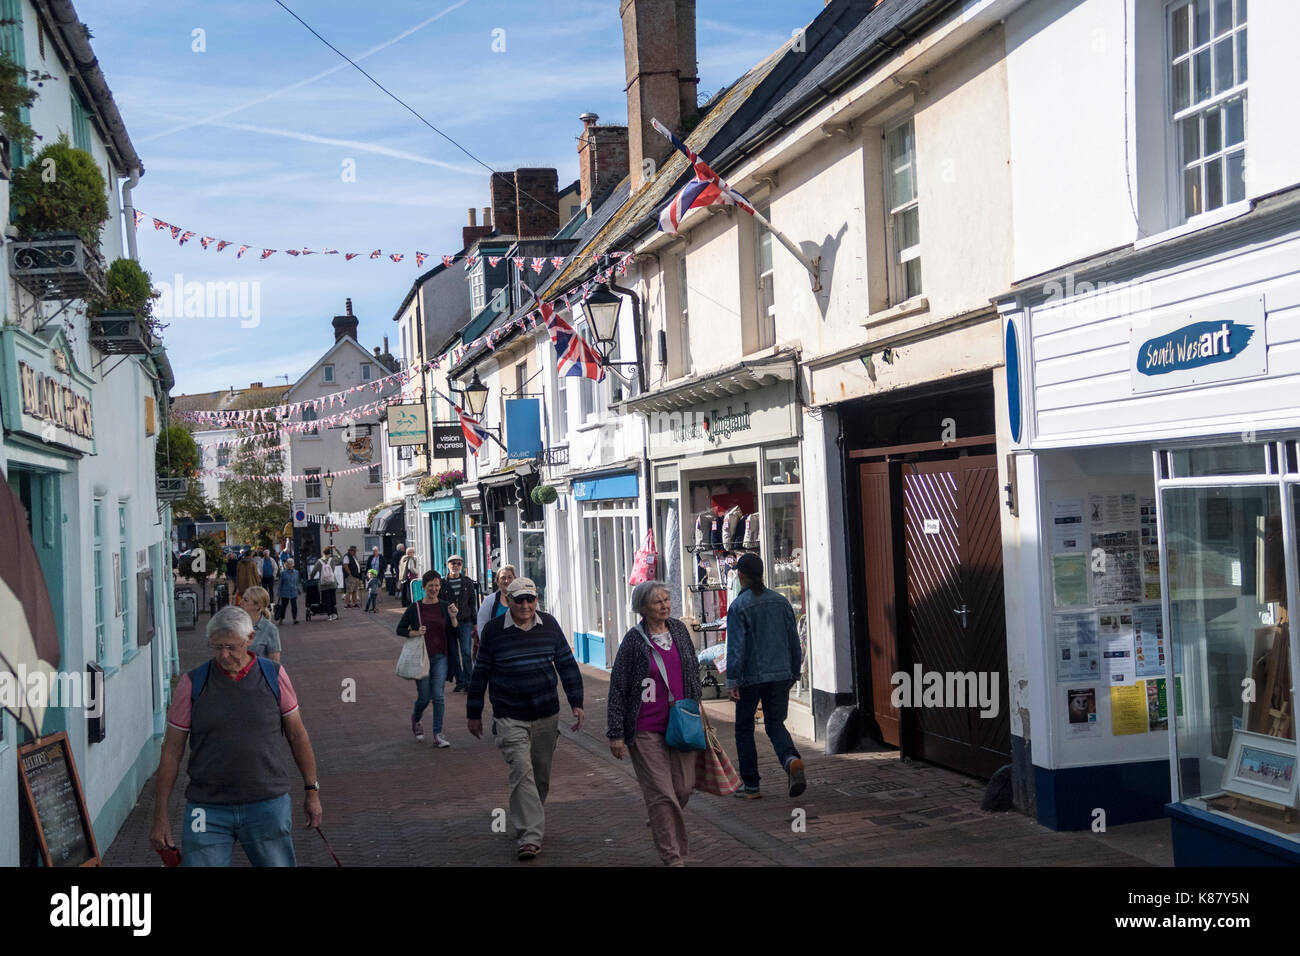 Old Fore Street, Sidmouth, Devon, England - Stock Image